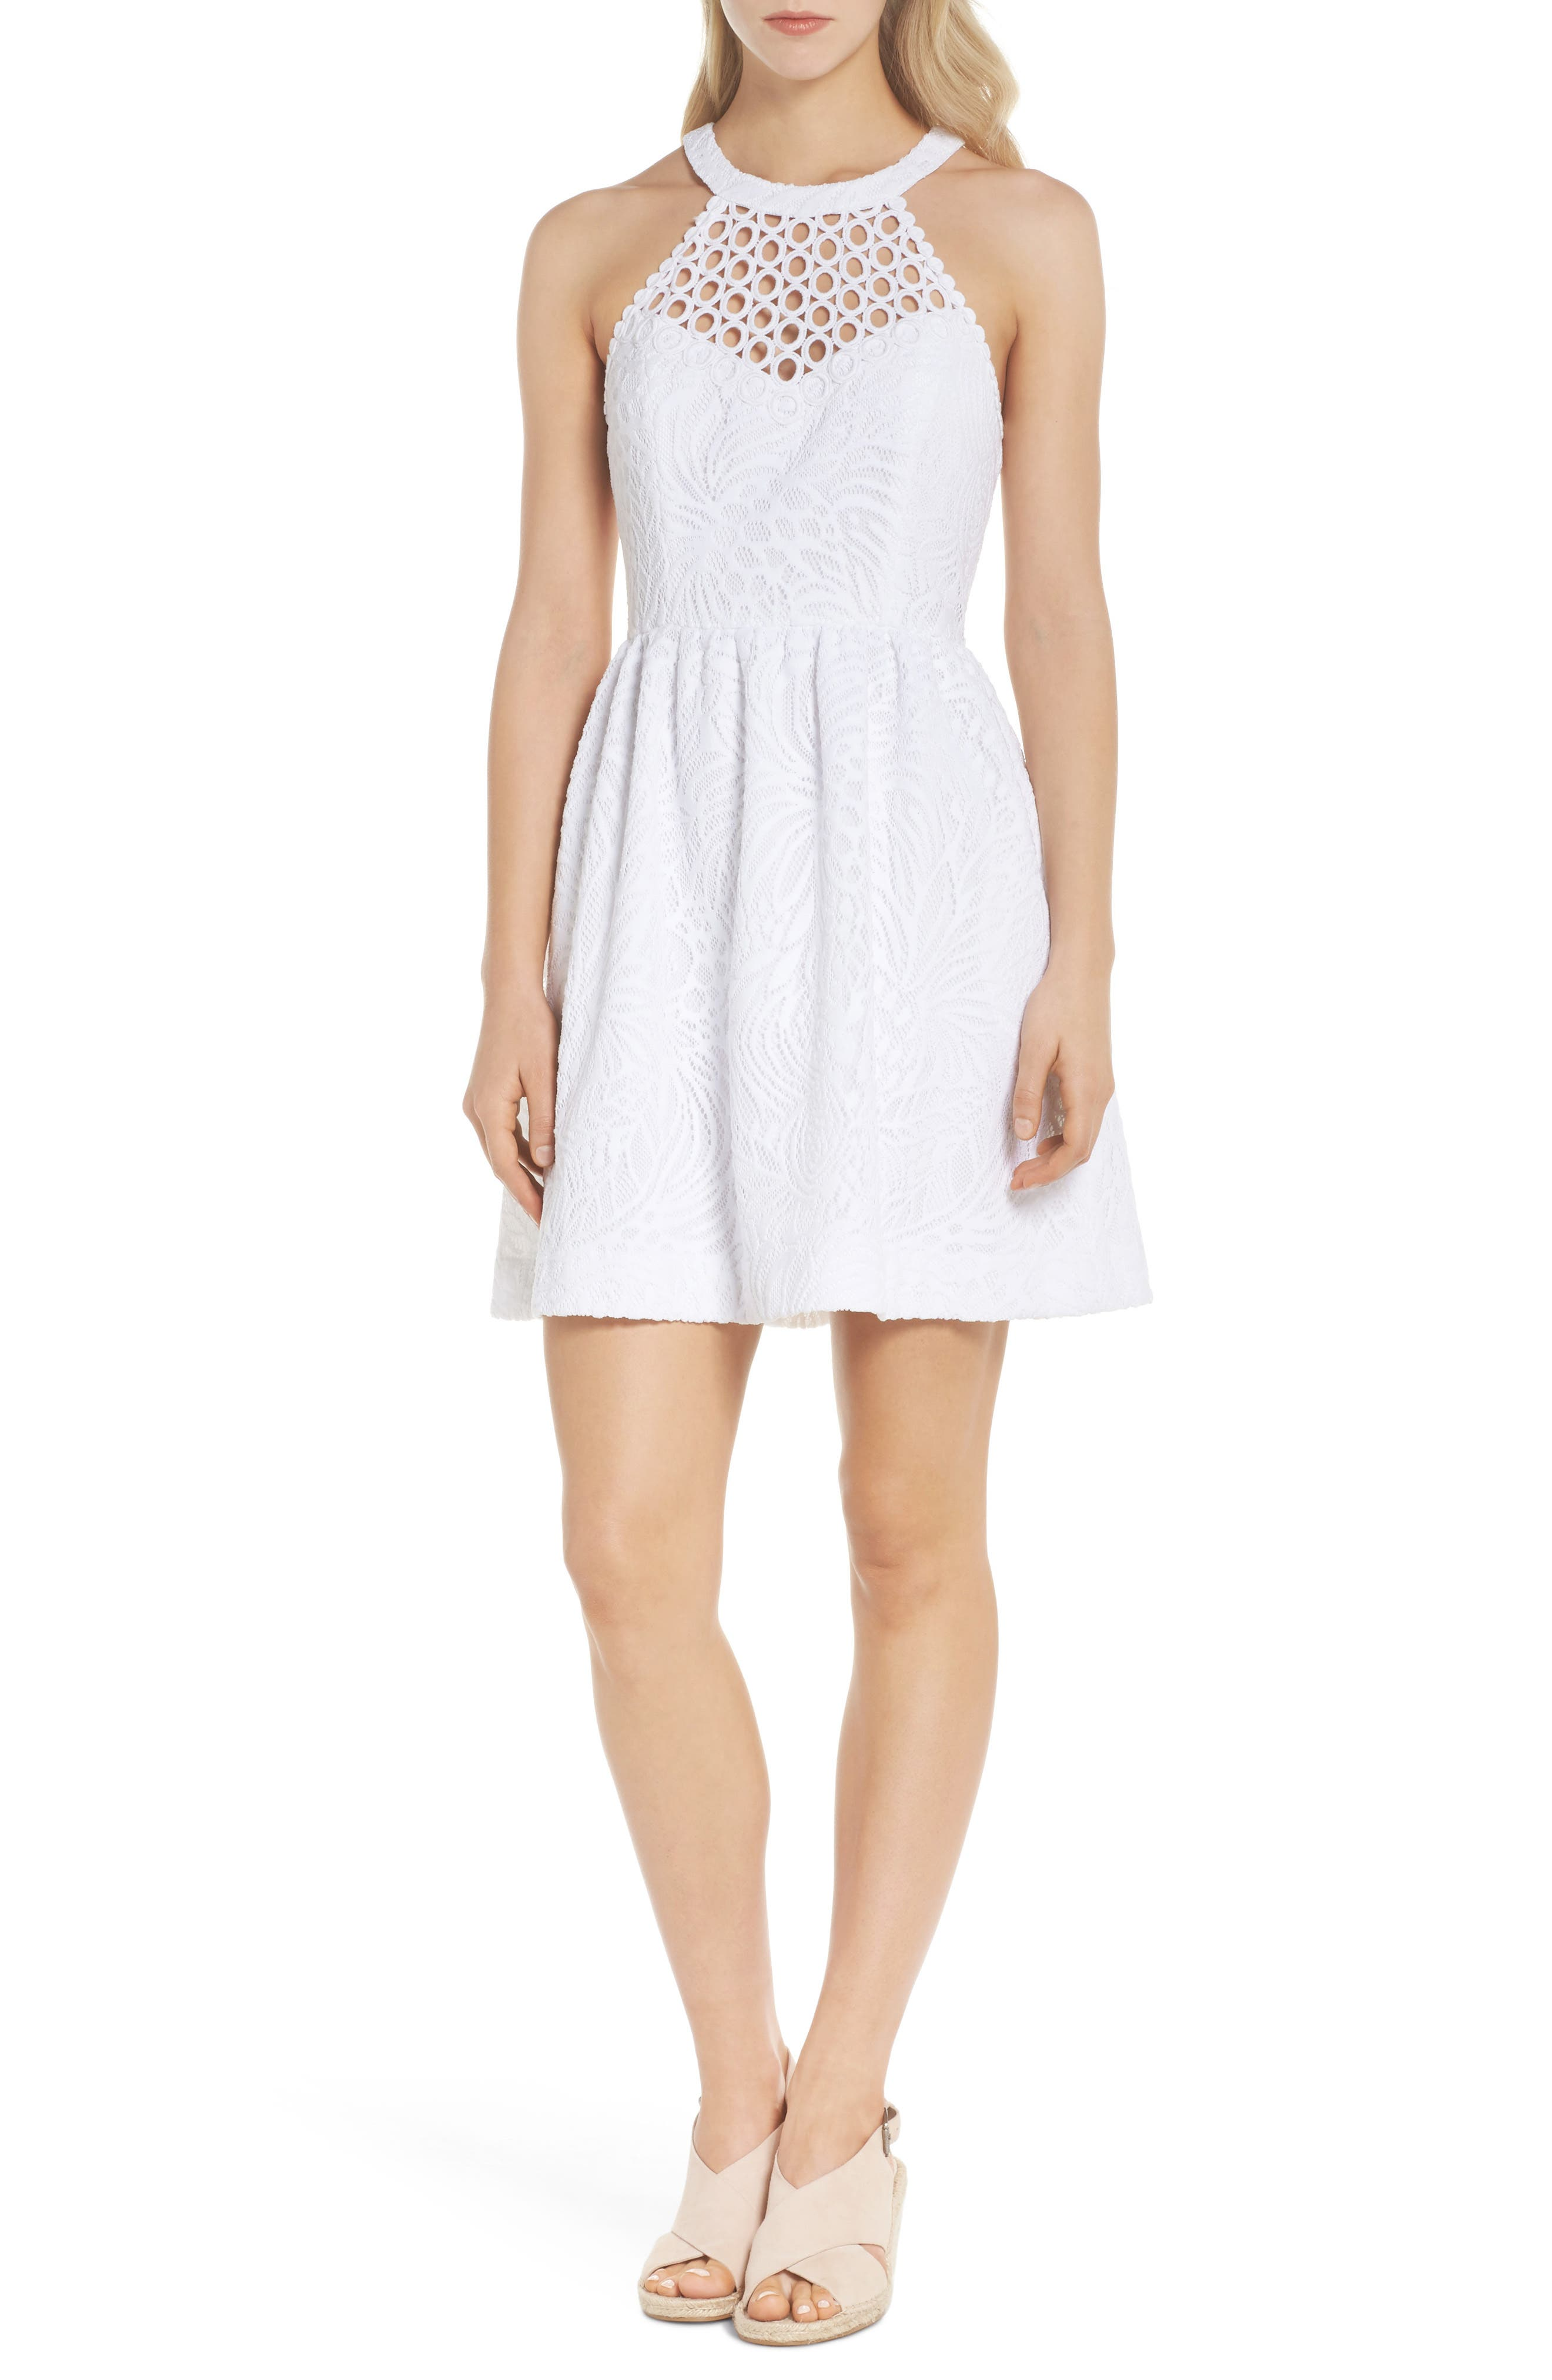 Kinley Halter Dress,                             Main thumbnail 1, color,                             RESORT WHITE TROPICAL LACE